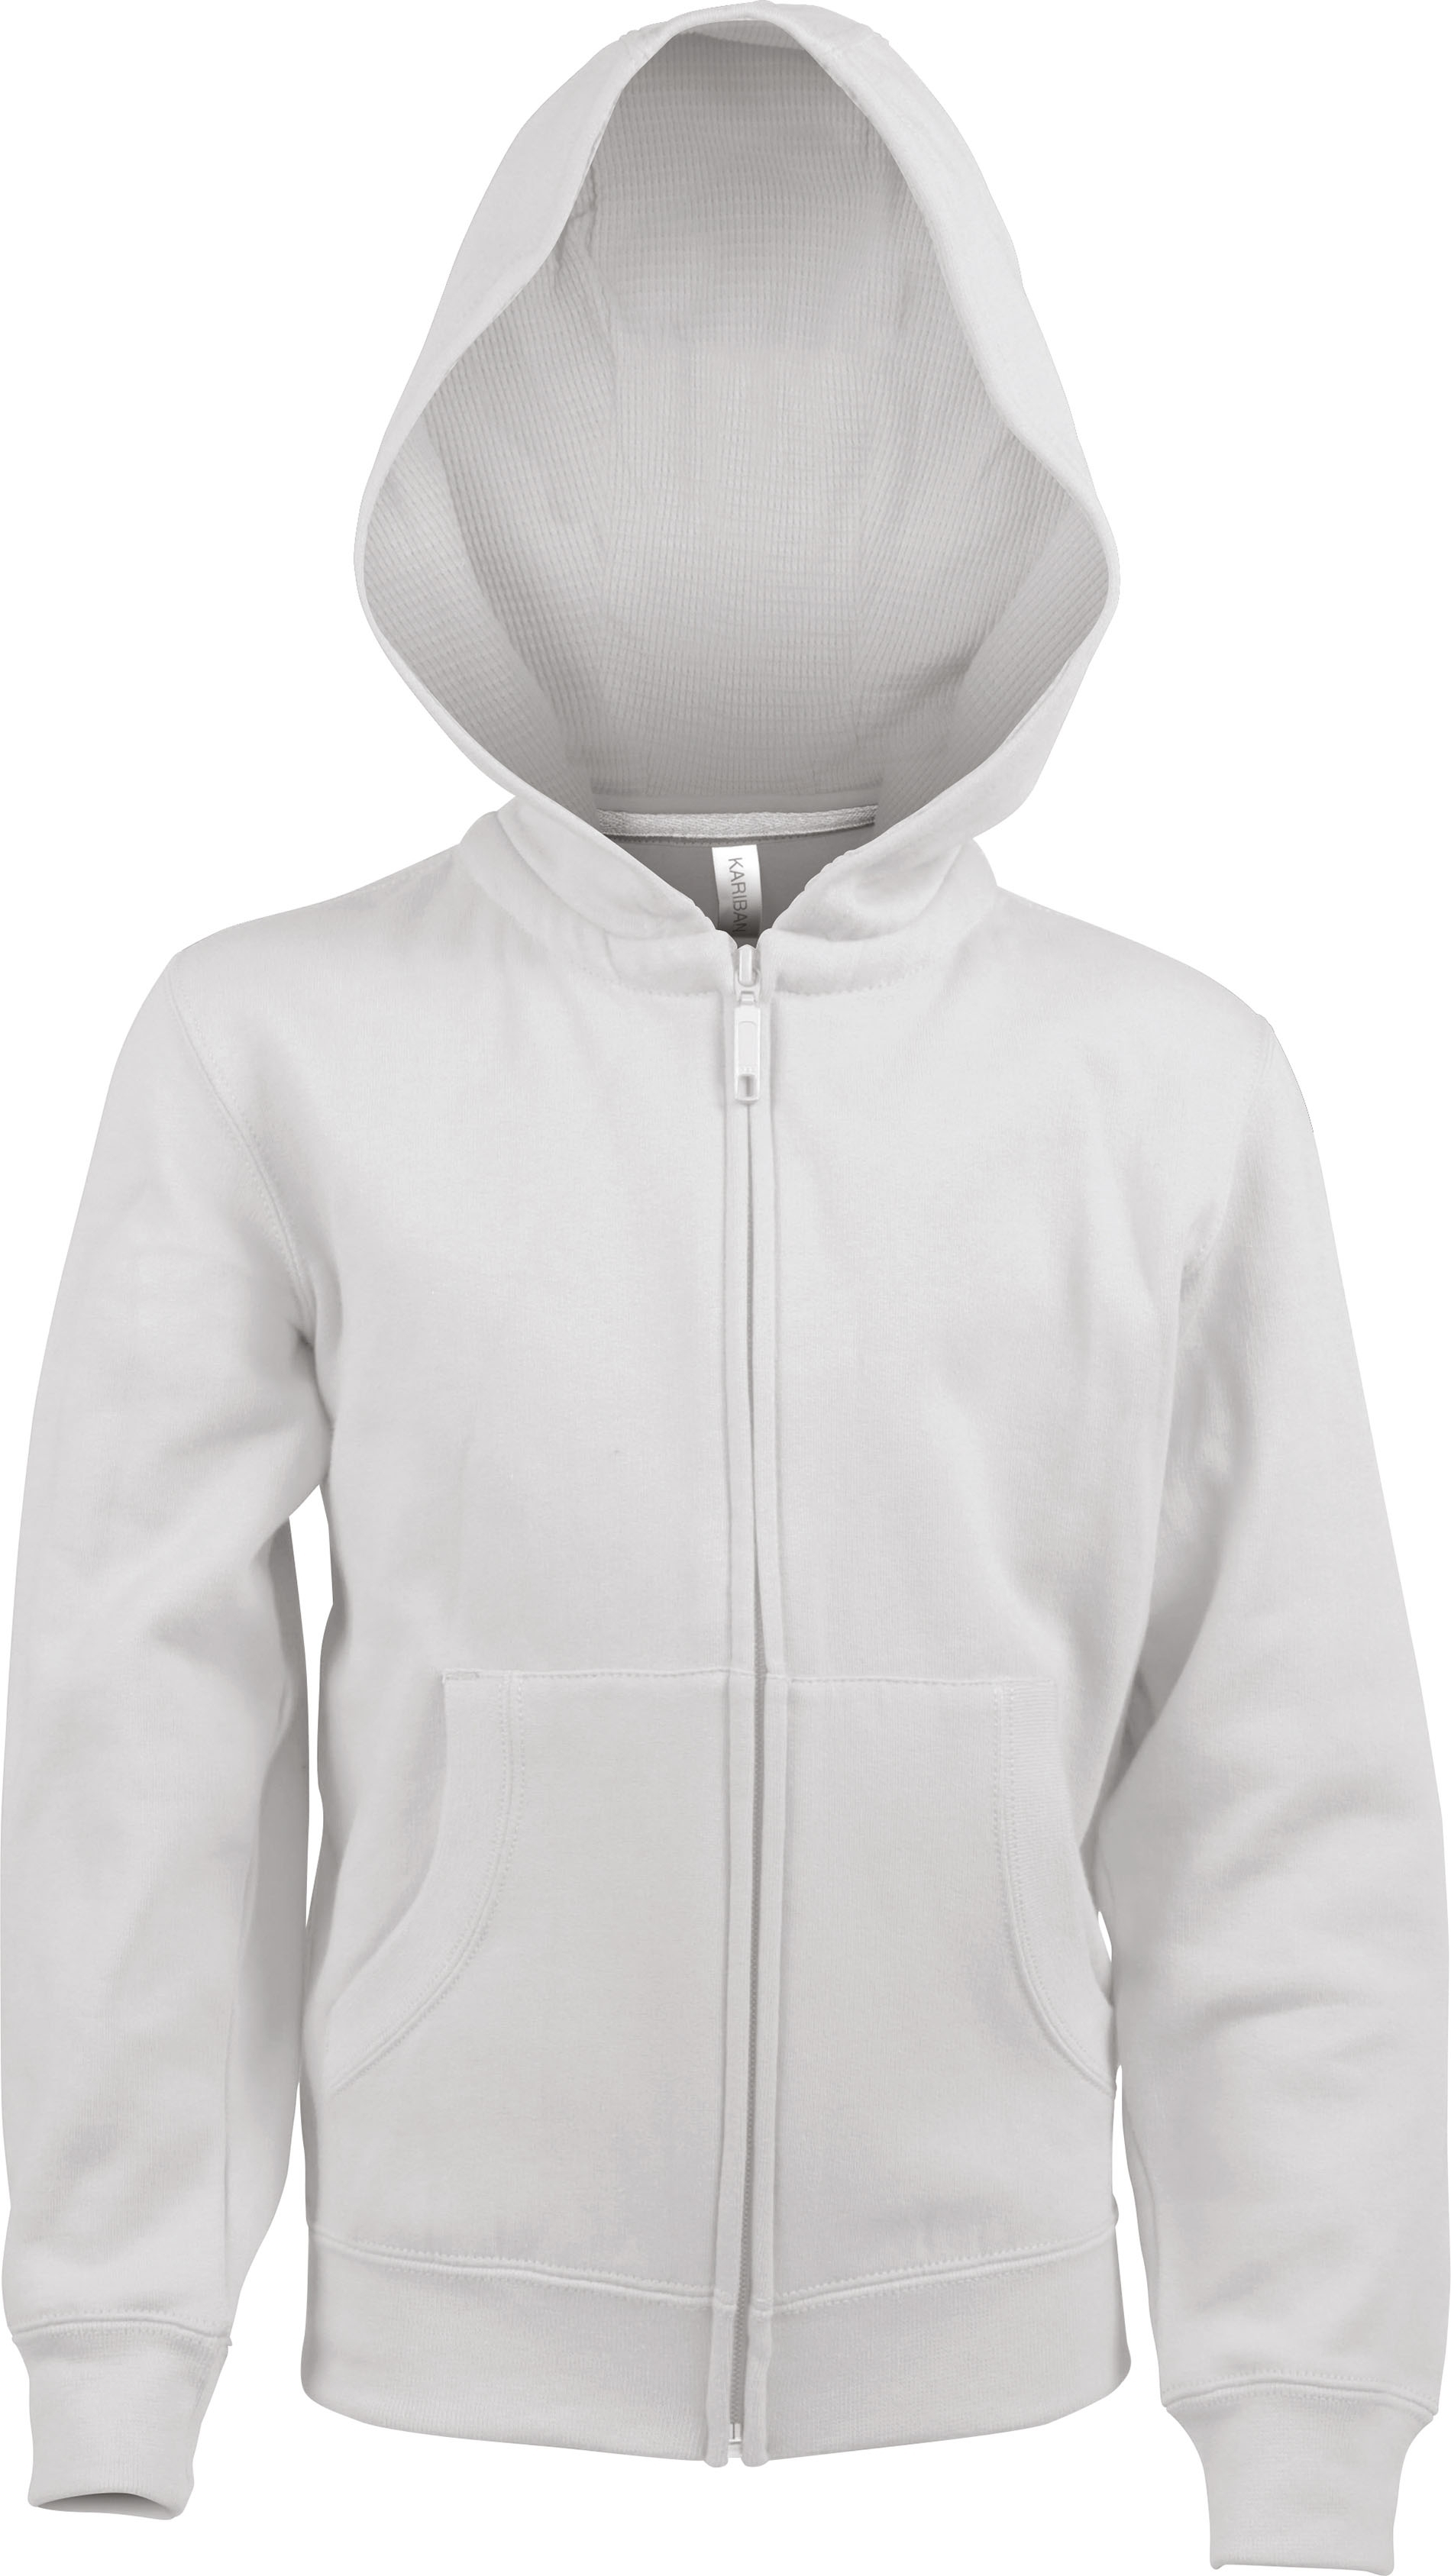 SWEAT SHIRT CAPUCHE ZIPPÉ ENFANT White Gladiasport